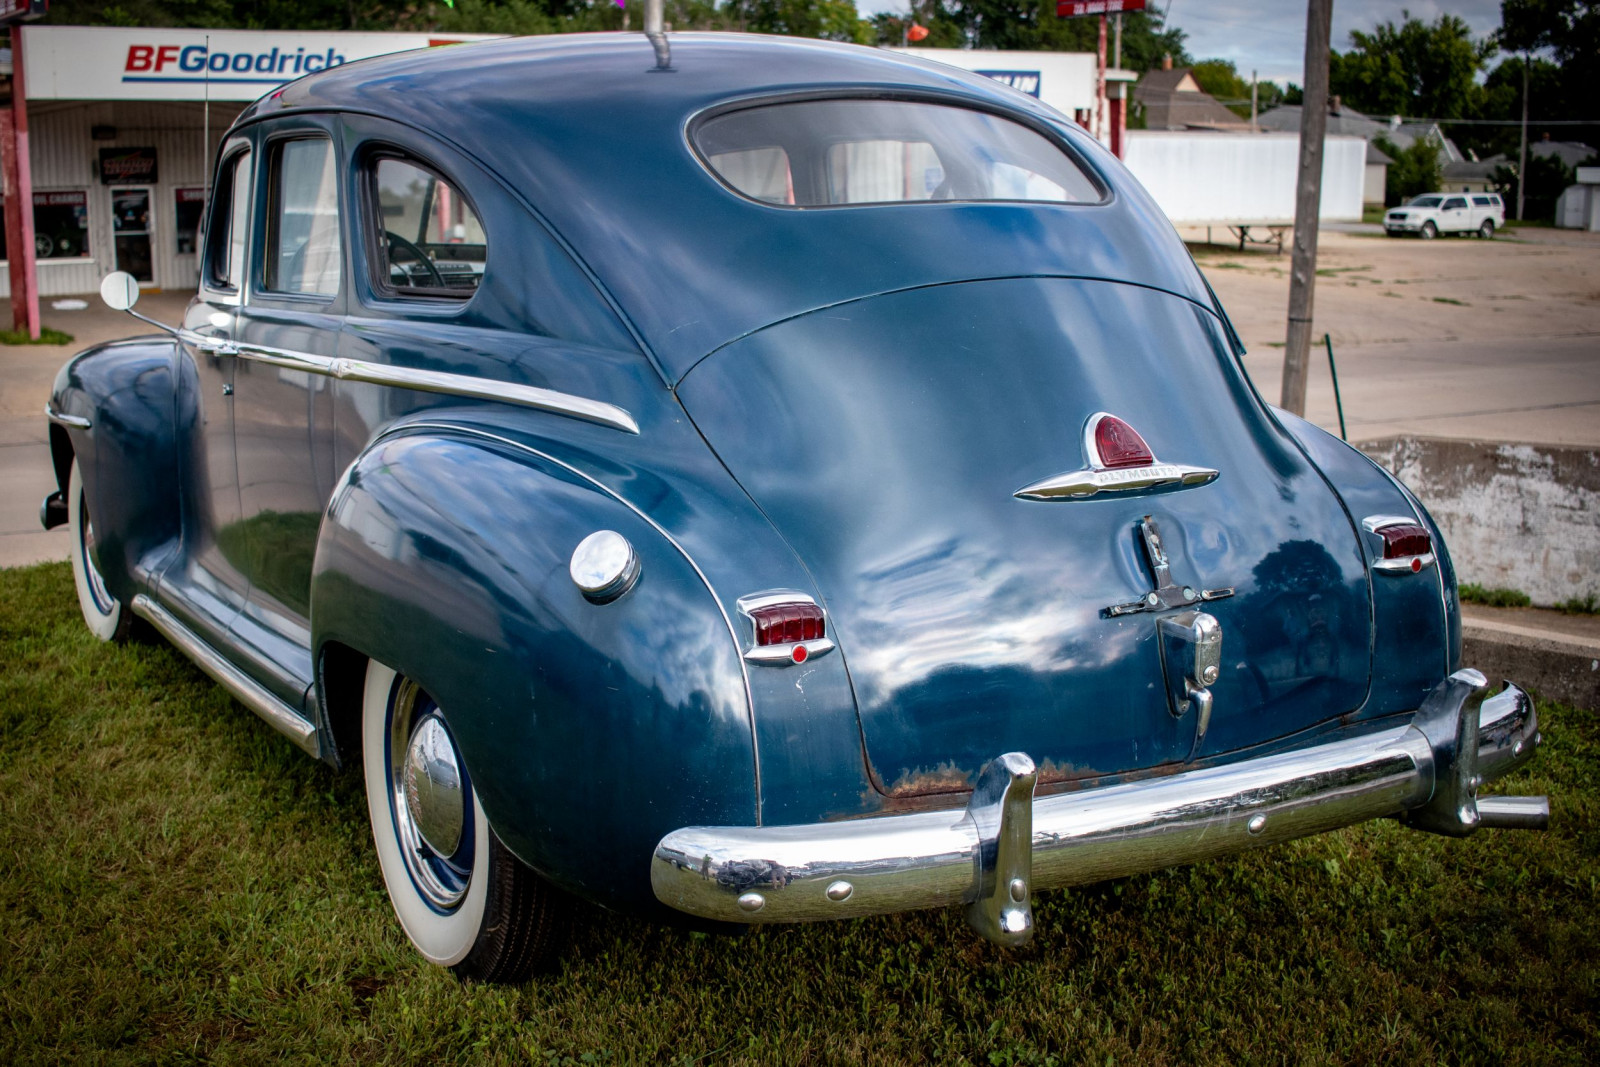 1947 Plymouth Special Deluxe  P15 4dr Sedan - Image 7